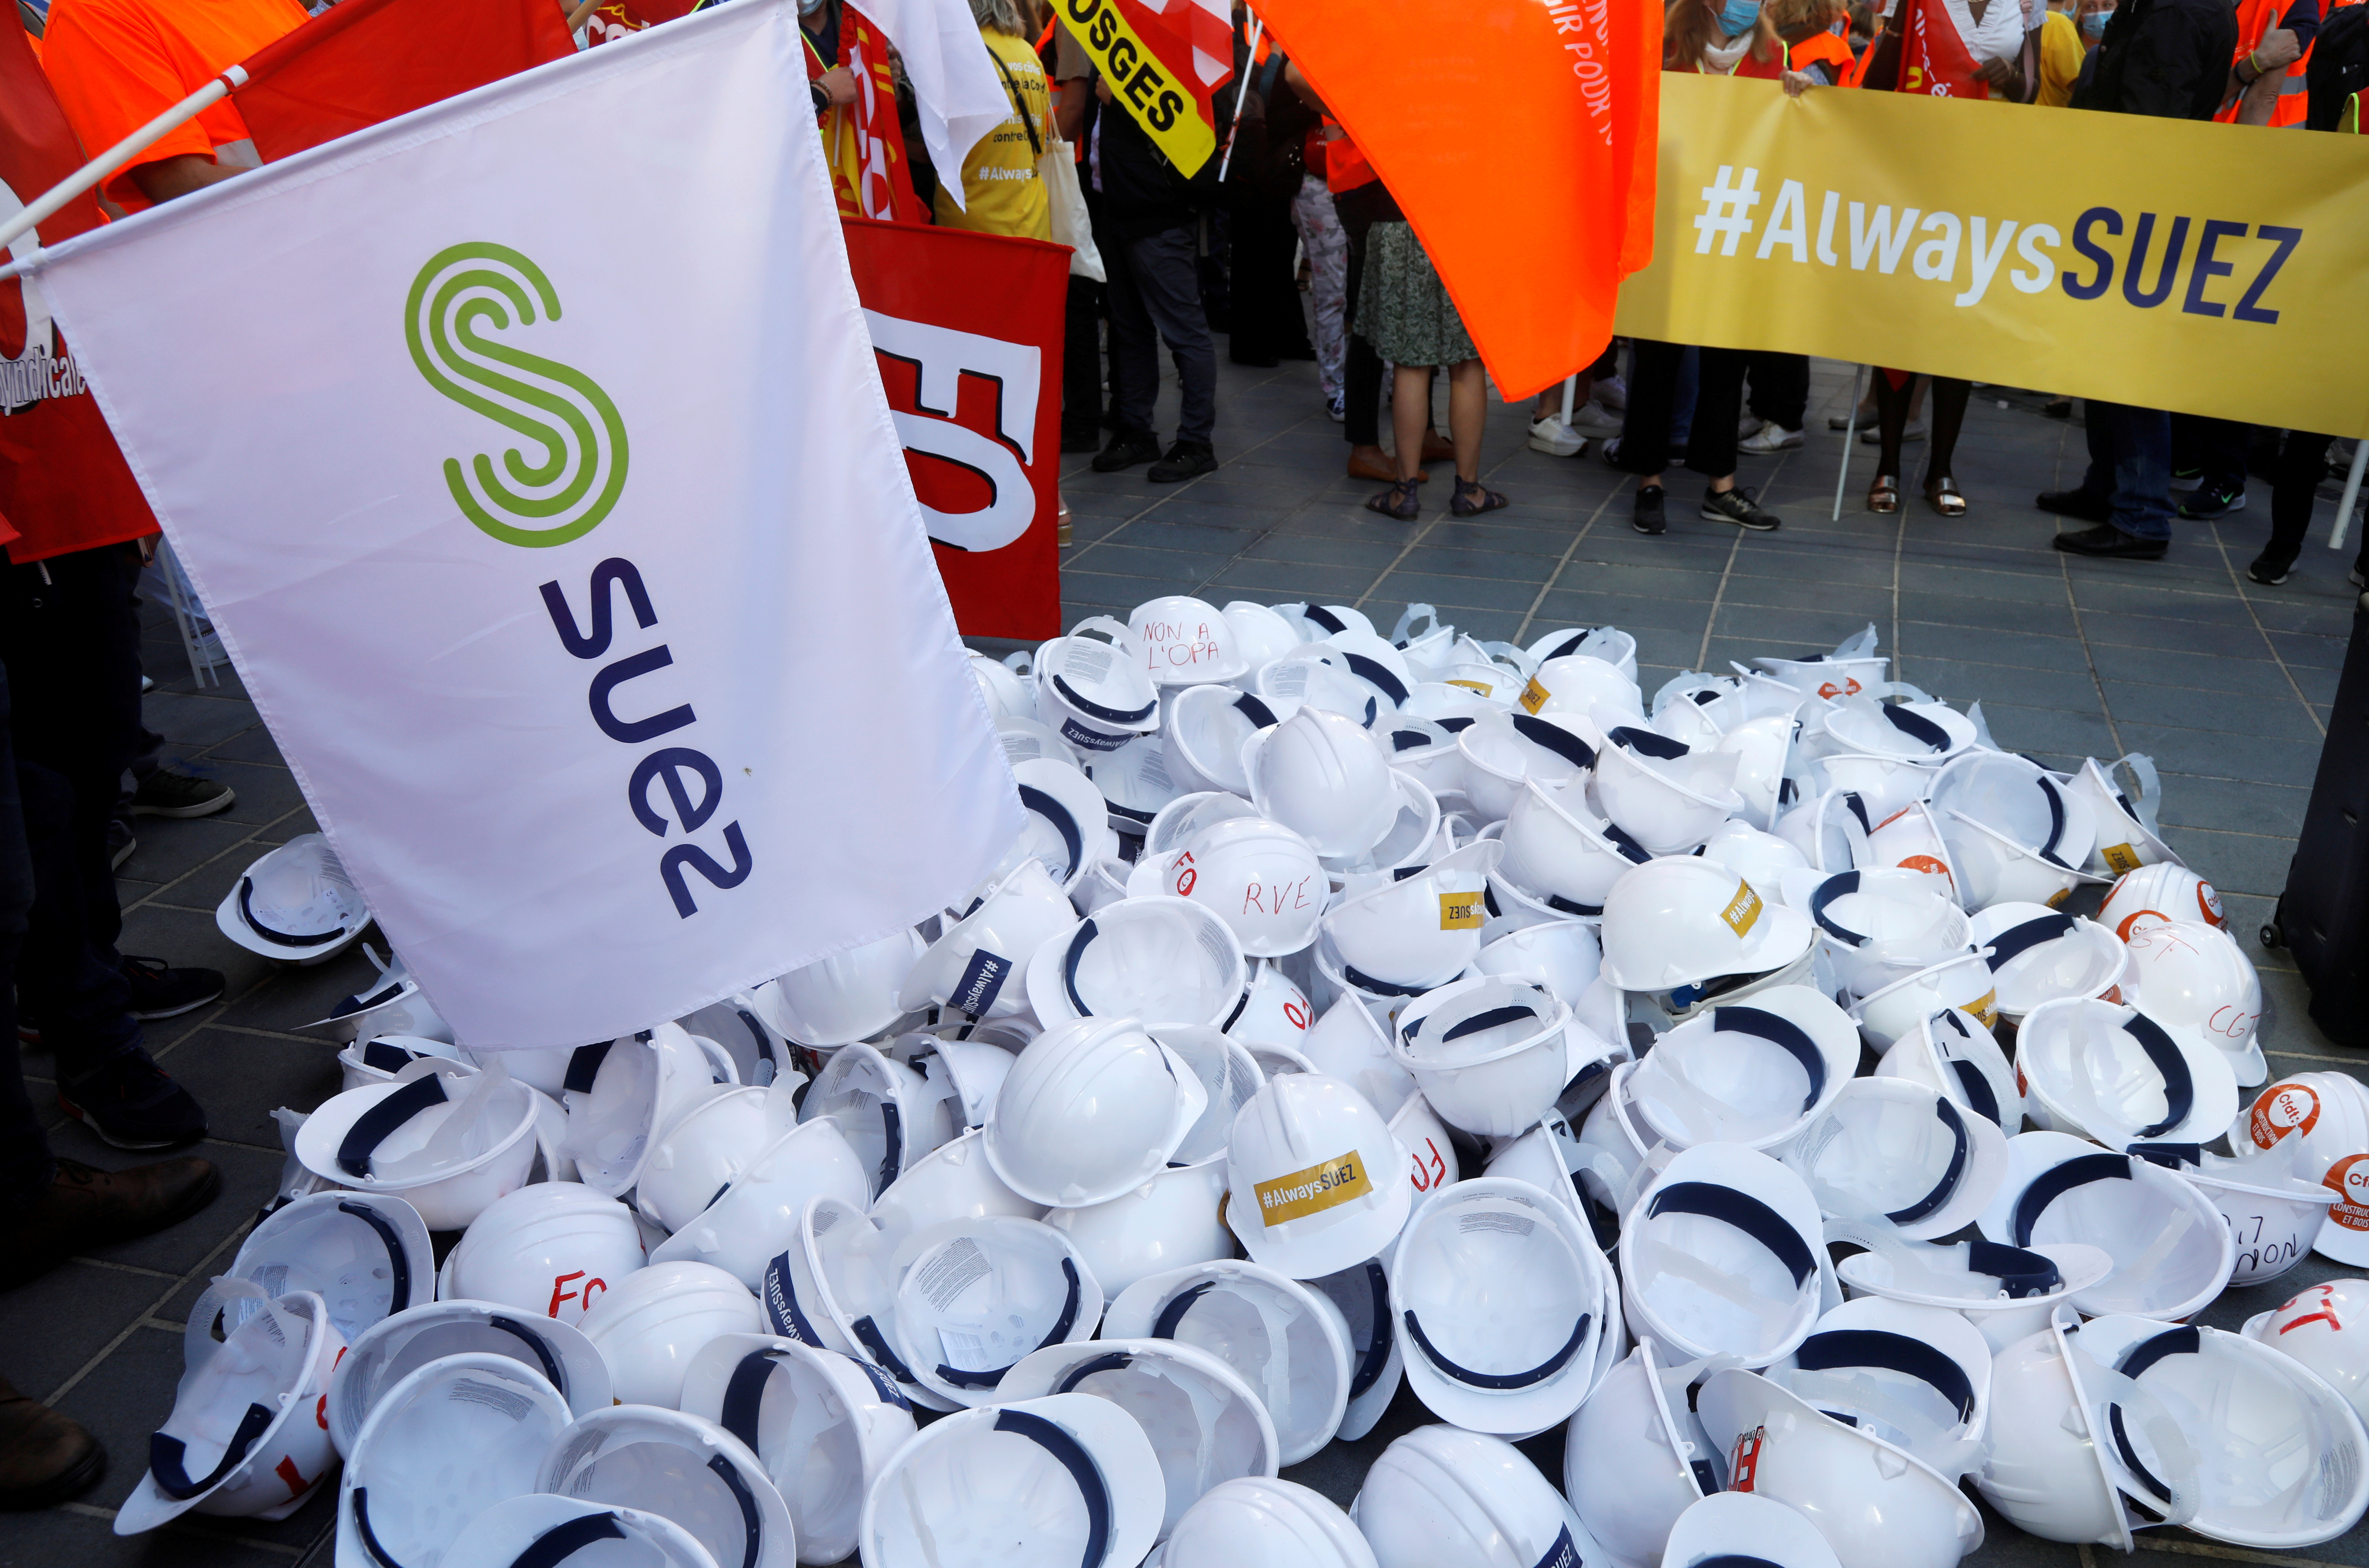 Employees of Suez demonstrate in front of Engie headquarters at La Defense business and financial district in Courbevoie near Paris, France, September 22, 2020. REUTERS/Charles Platiau